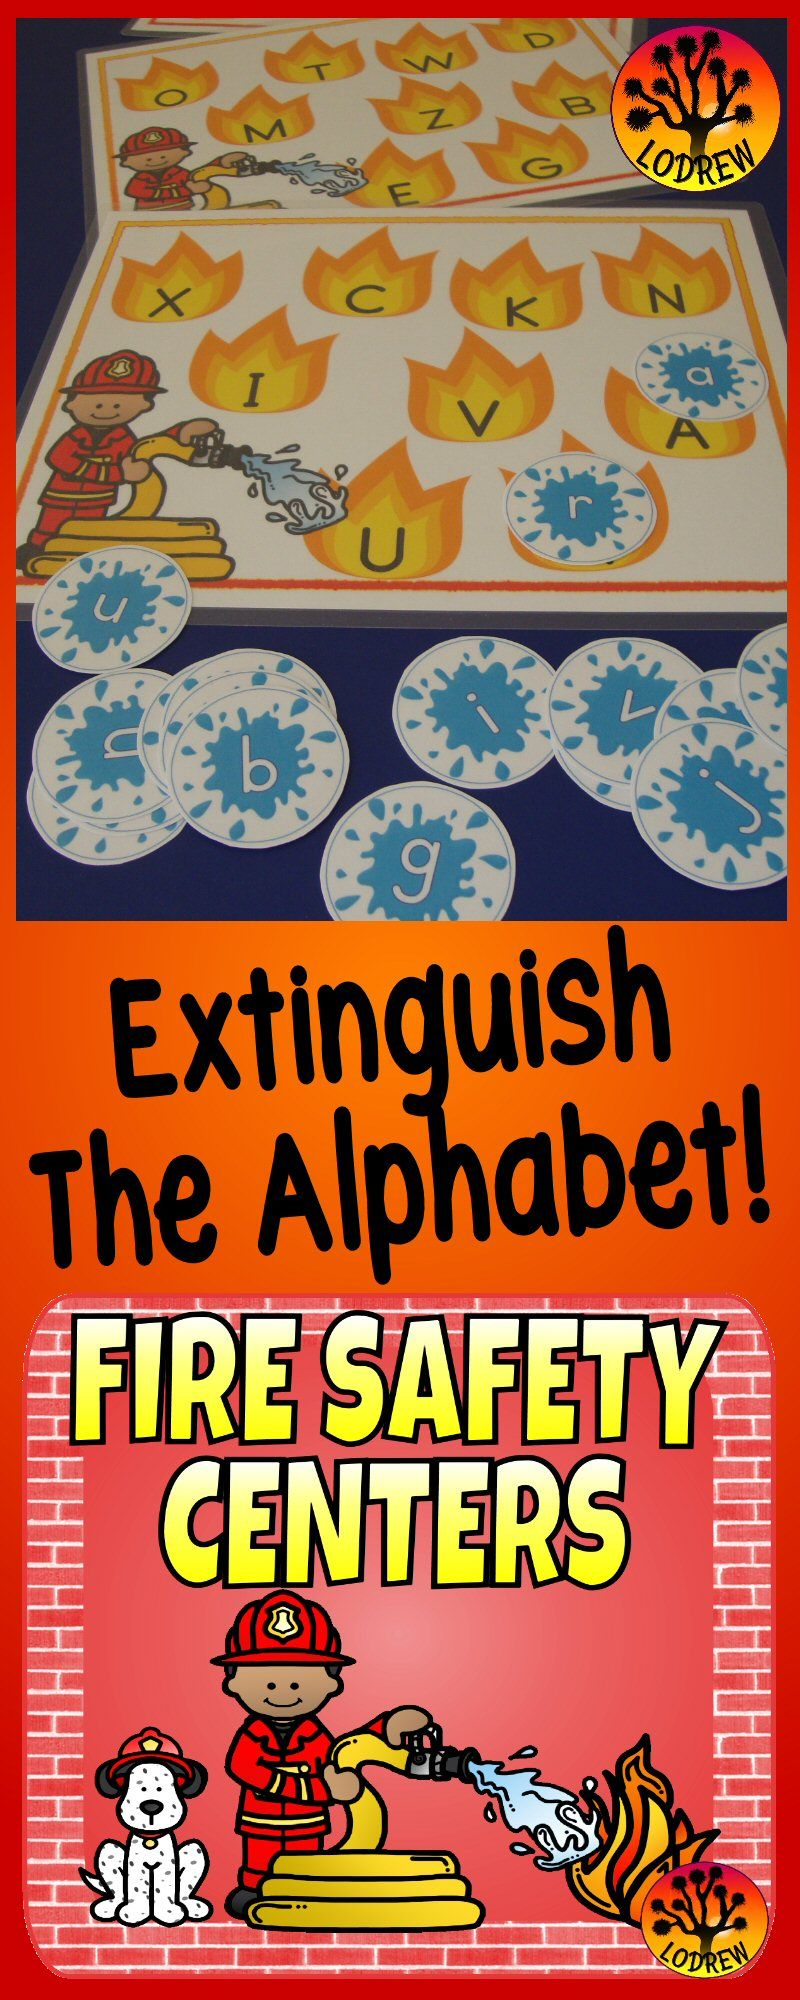 136 pages of fire safety activities including brag tags